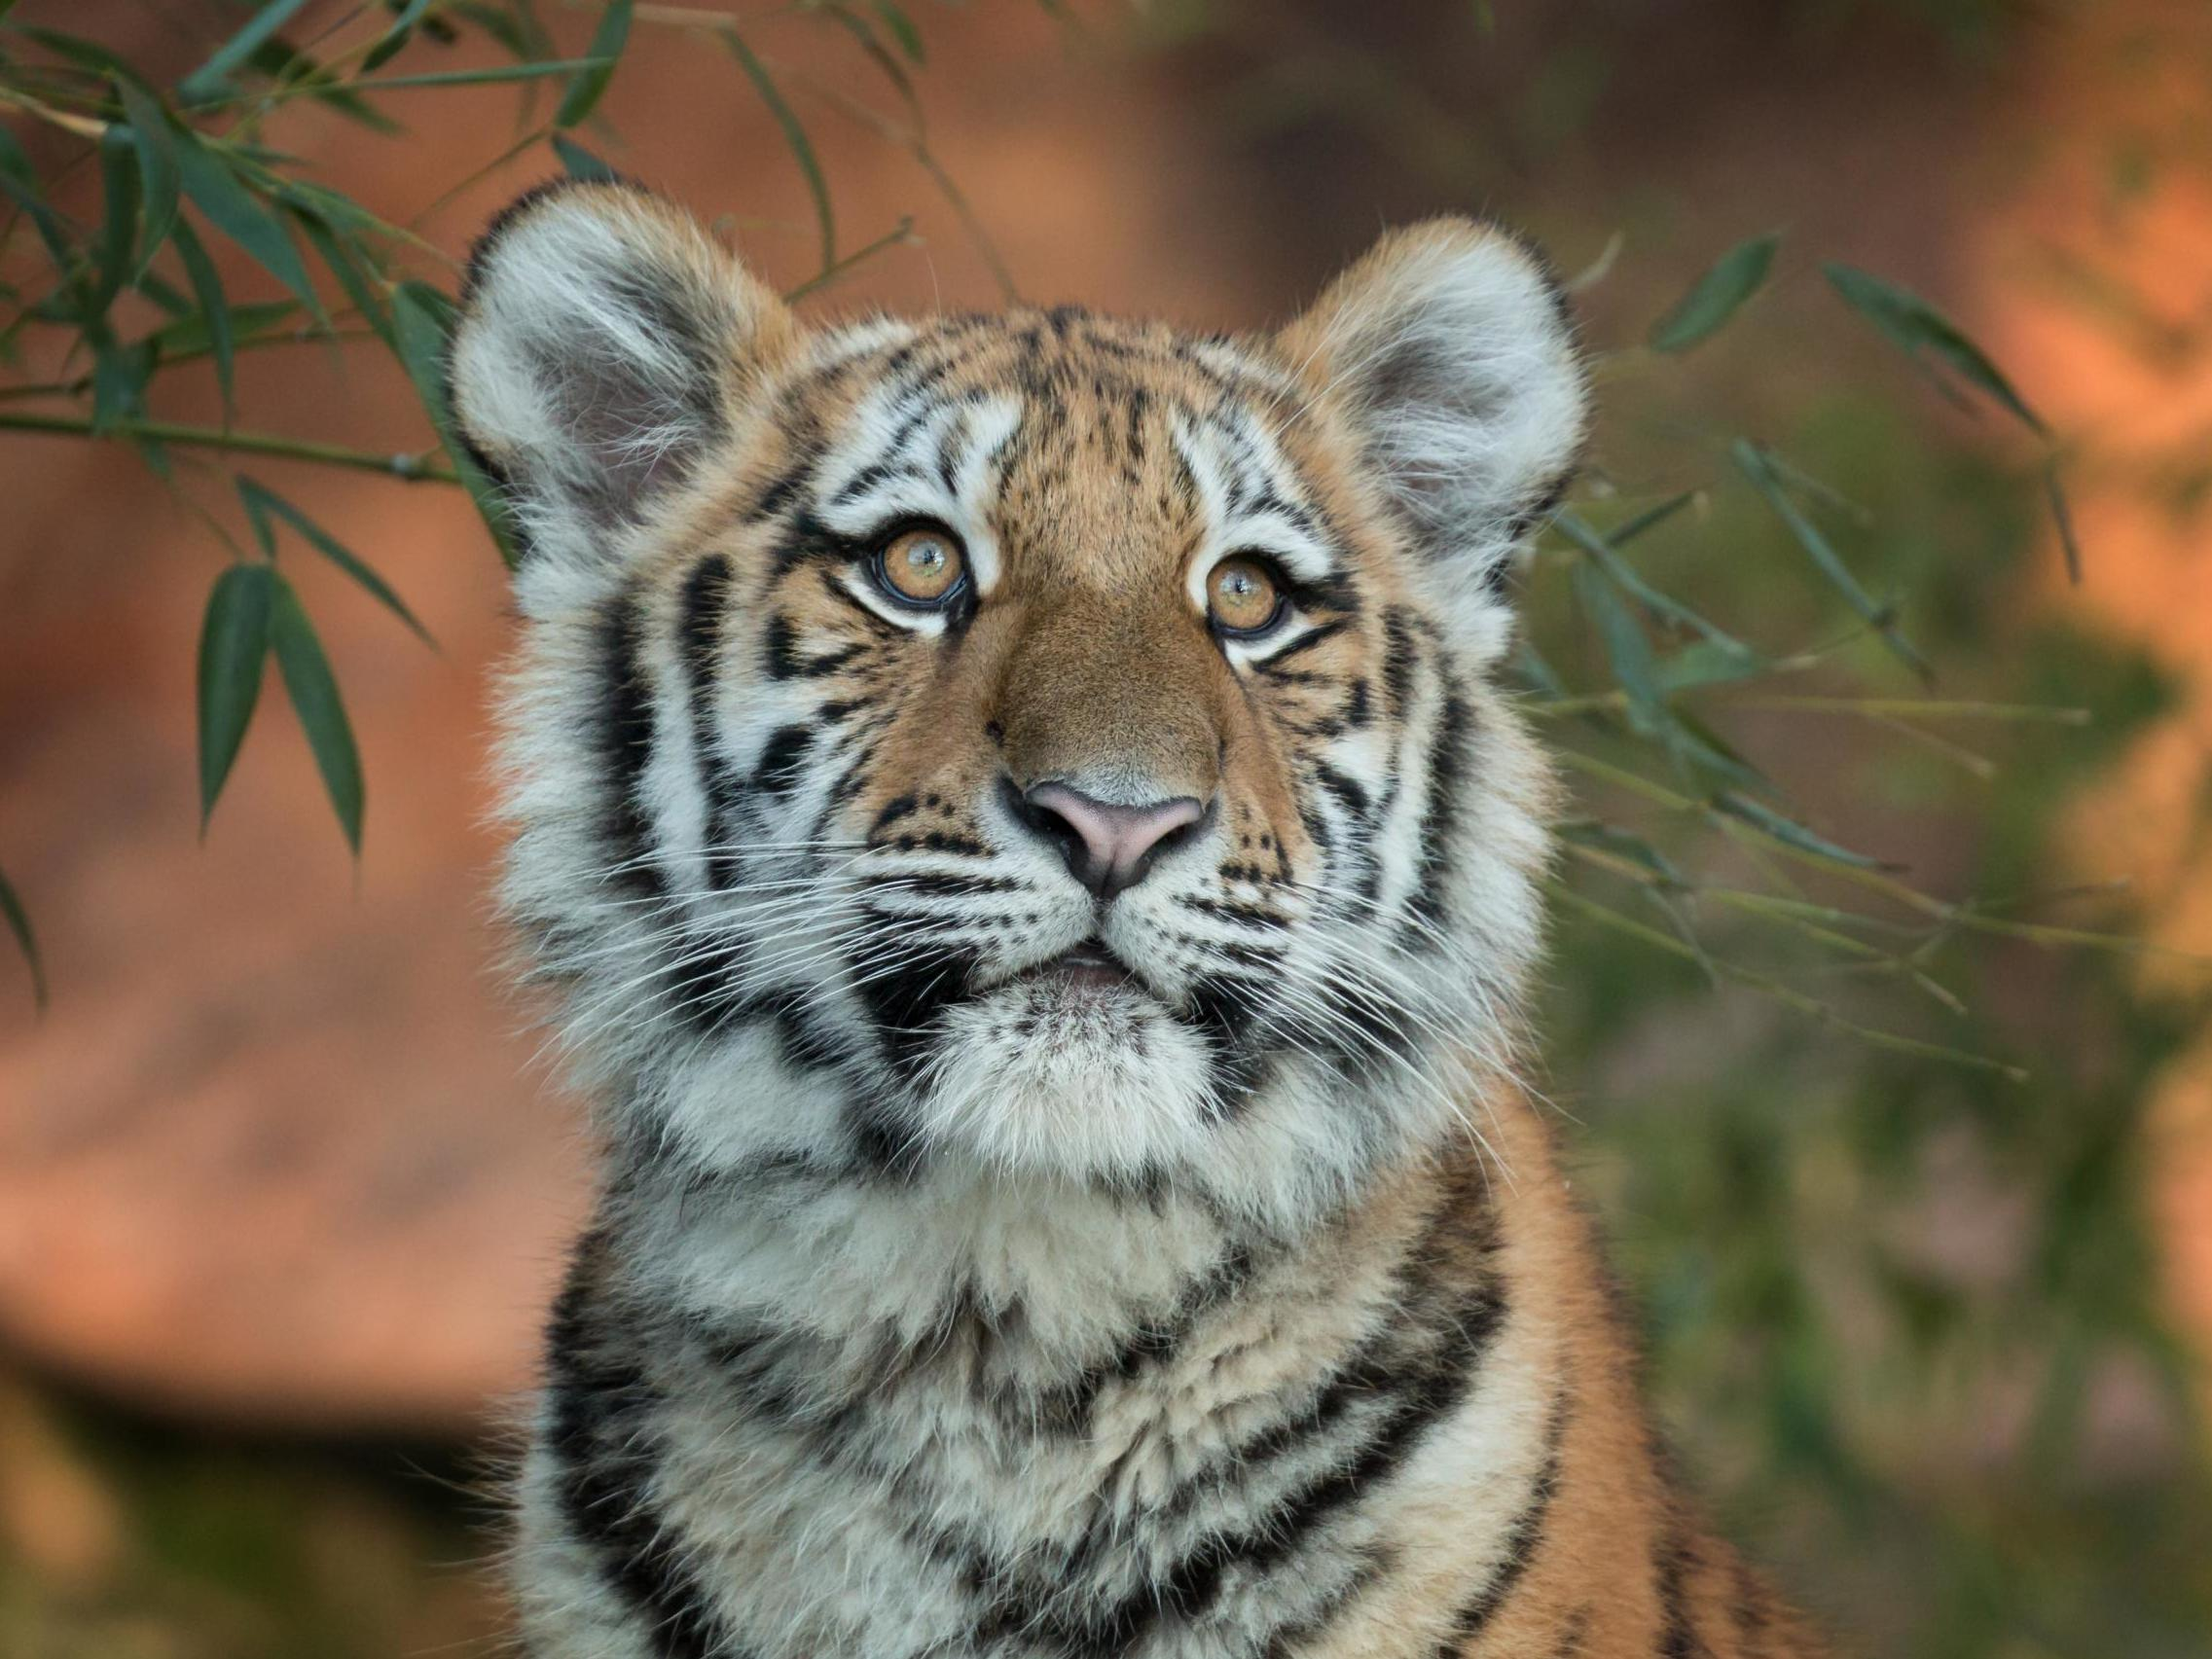 man eating tiger hunted by indian authorities using calvin klein